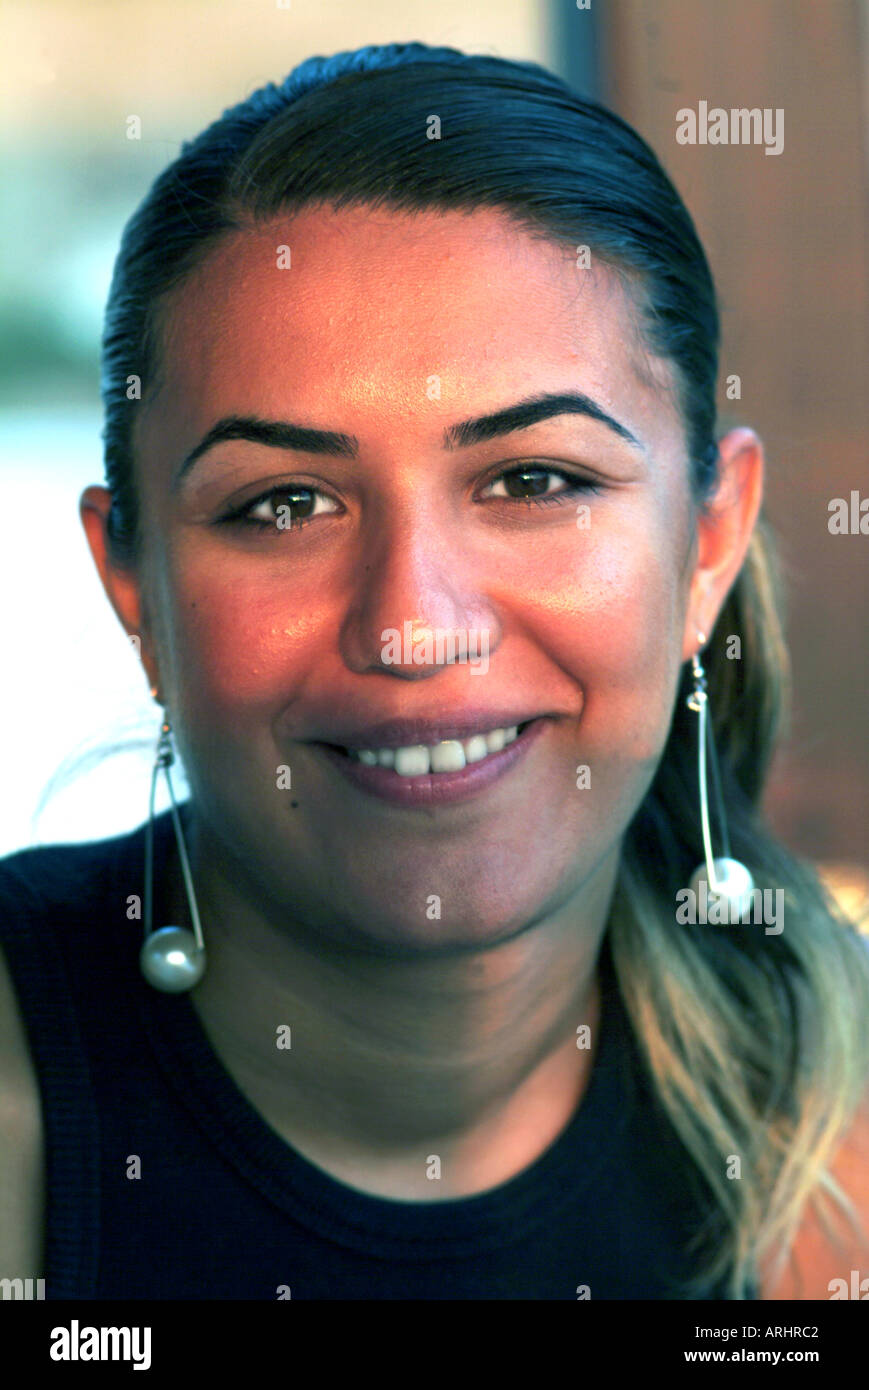 YOUNG TURKISH WOMAN IN HER EARLY TWENTIES SMILING POSITIVELY,TURGUTREIS,TURKEY - Stock Image